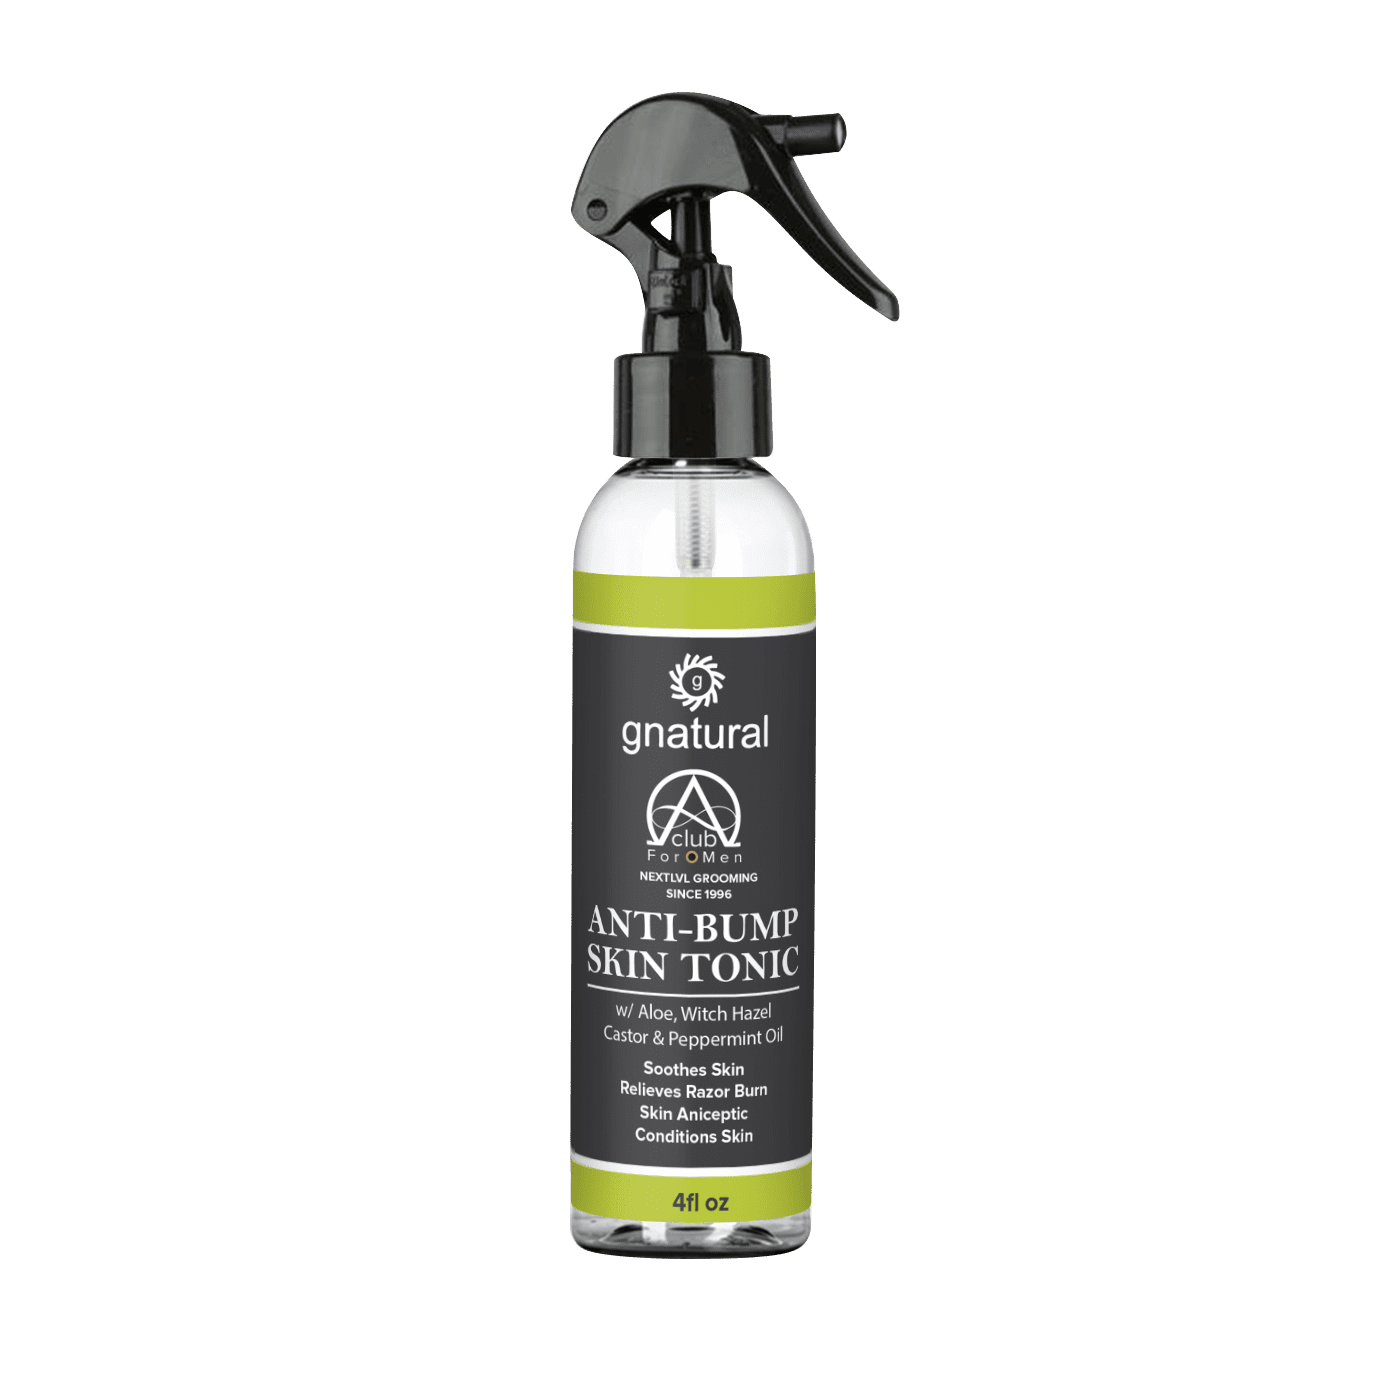 gnatural Anti-Bump Skin Tonic